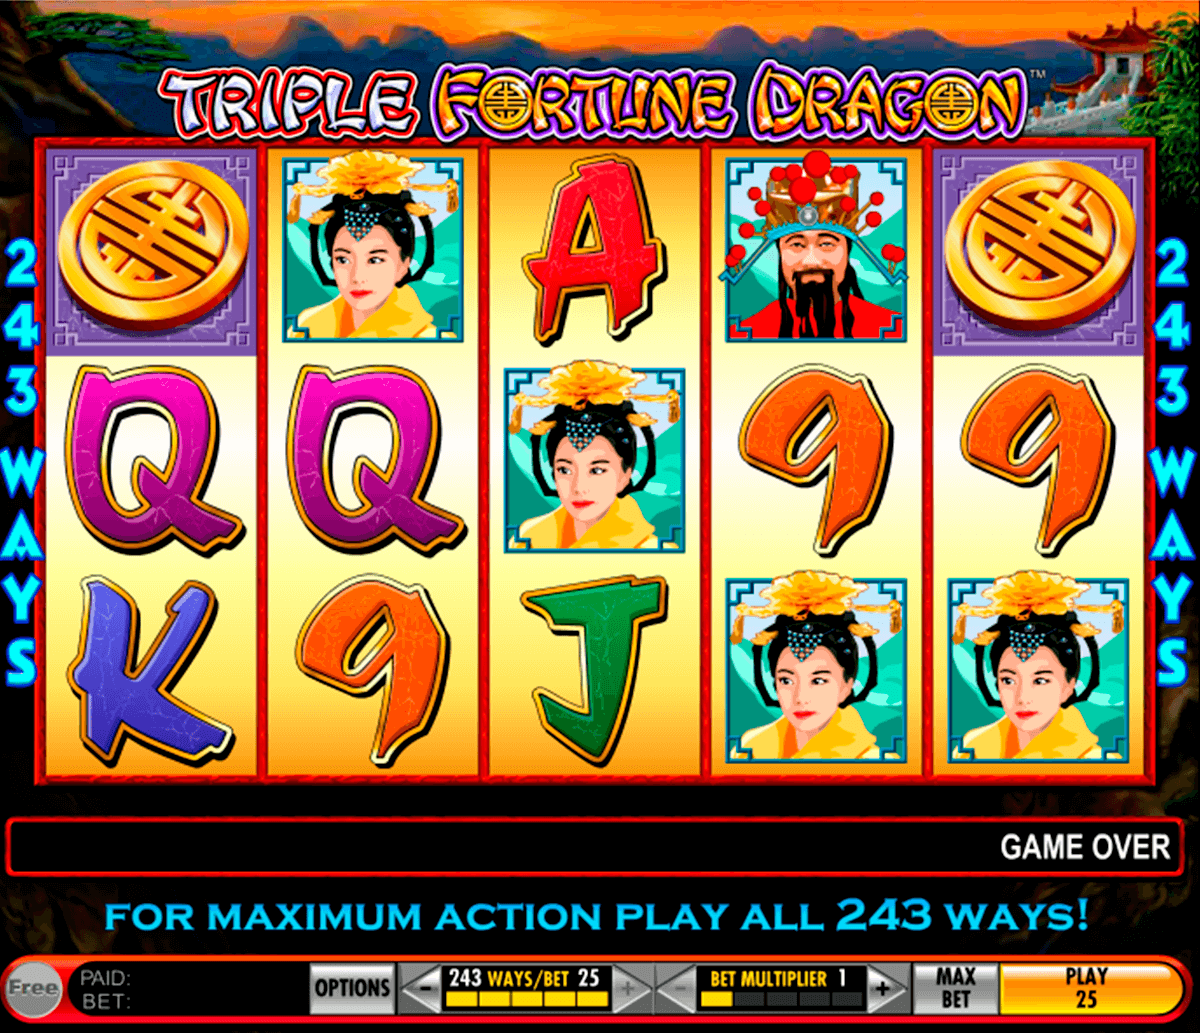 triple fortune dragon igt